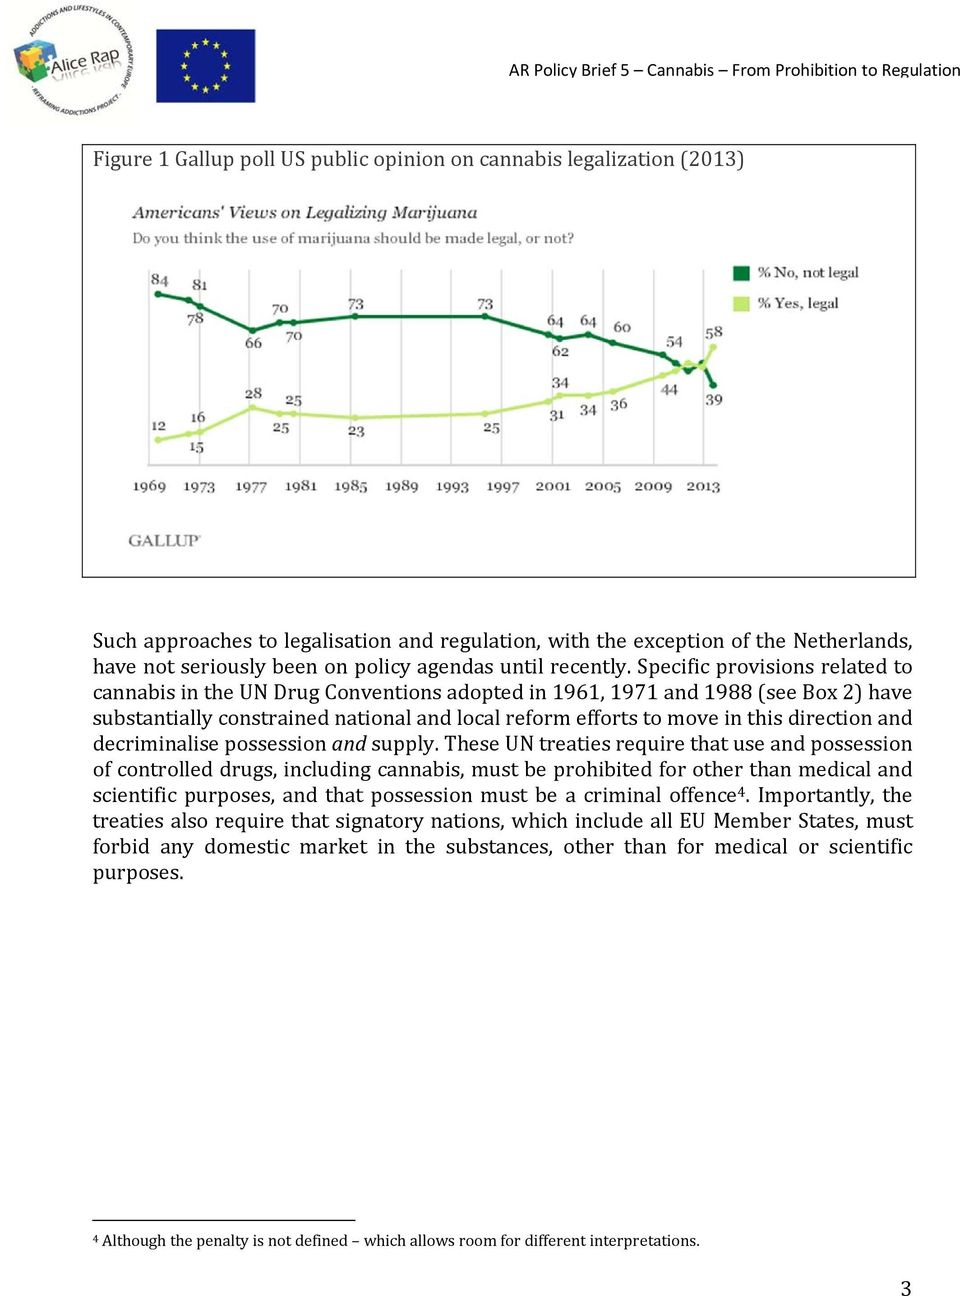 Specific provisions related to cannabis in the UN Drug Conventions adopted in 1961, 1971 and 1988 (see Box 2) have substantially constrained national and local reform efforts to move in this